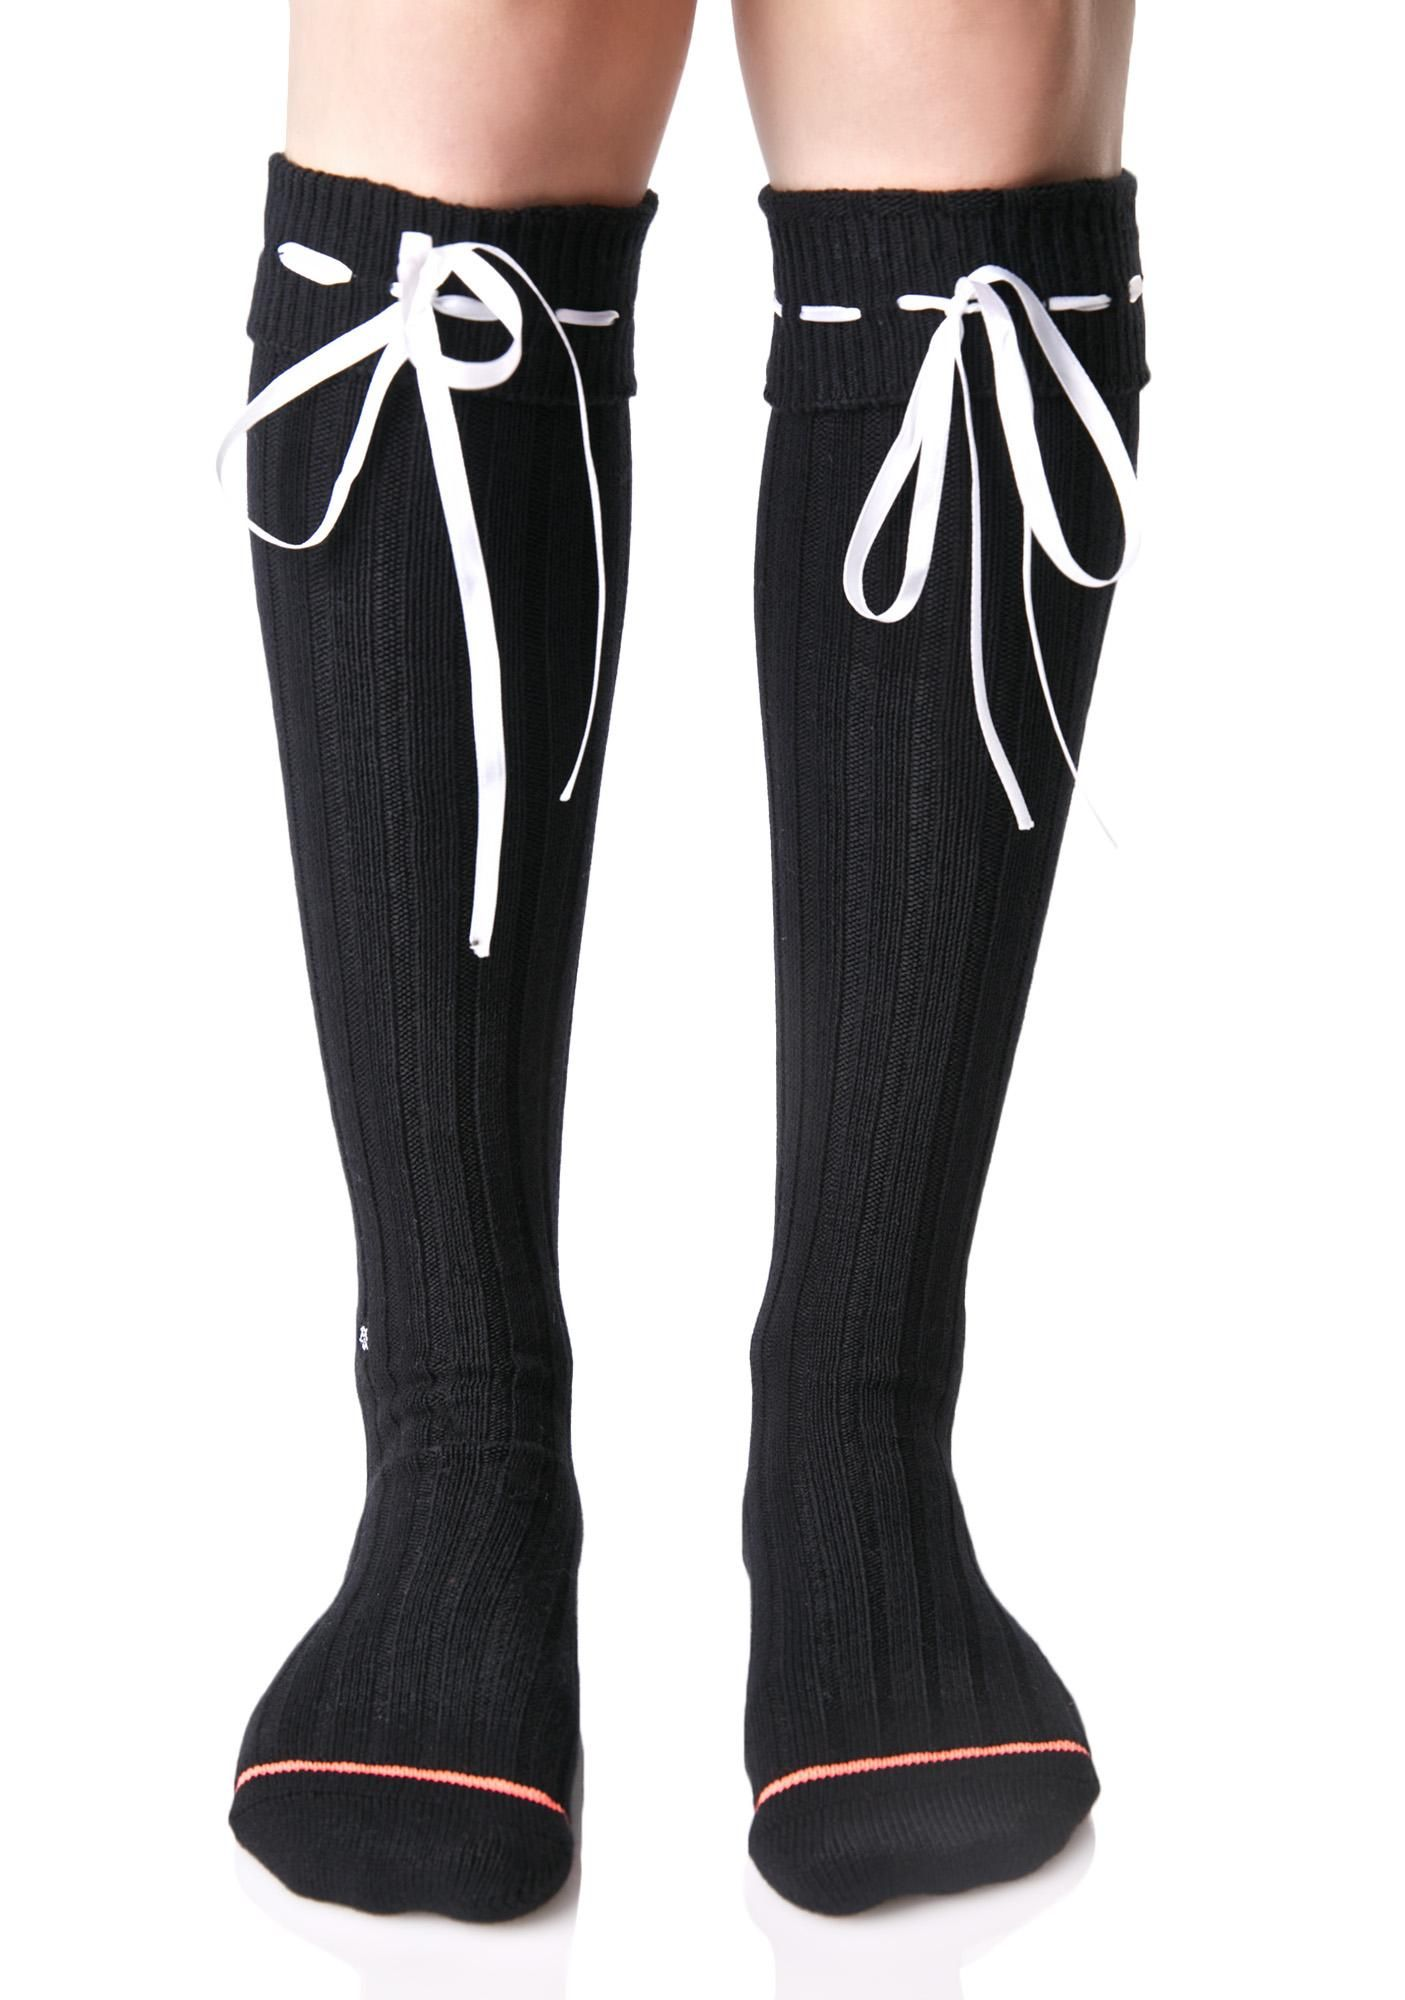 283d31440 Stance Dark Dolores Knee High Socks are gunna wrap ya up perfectly ...